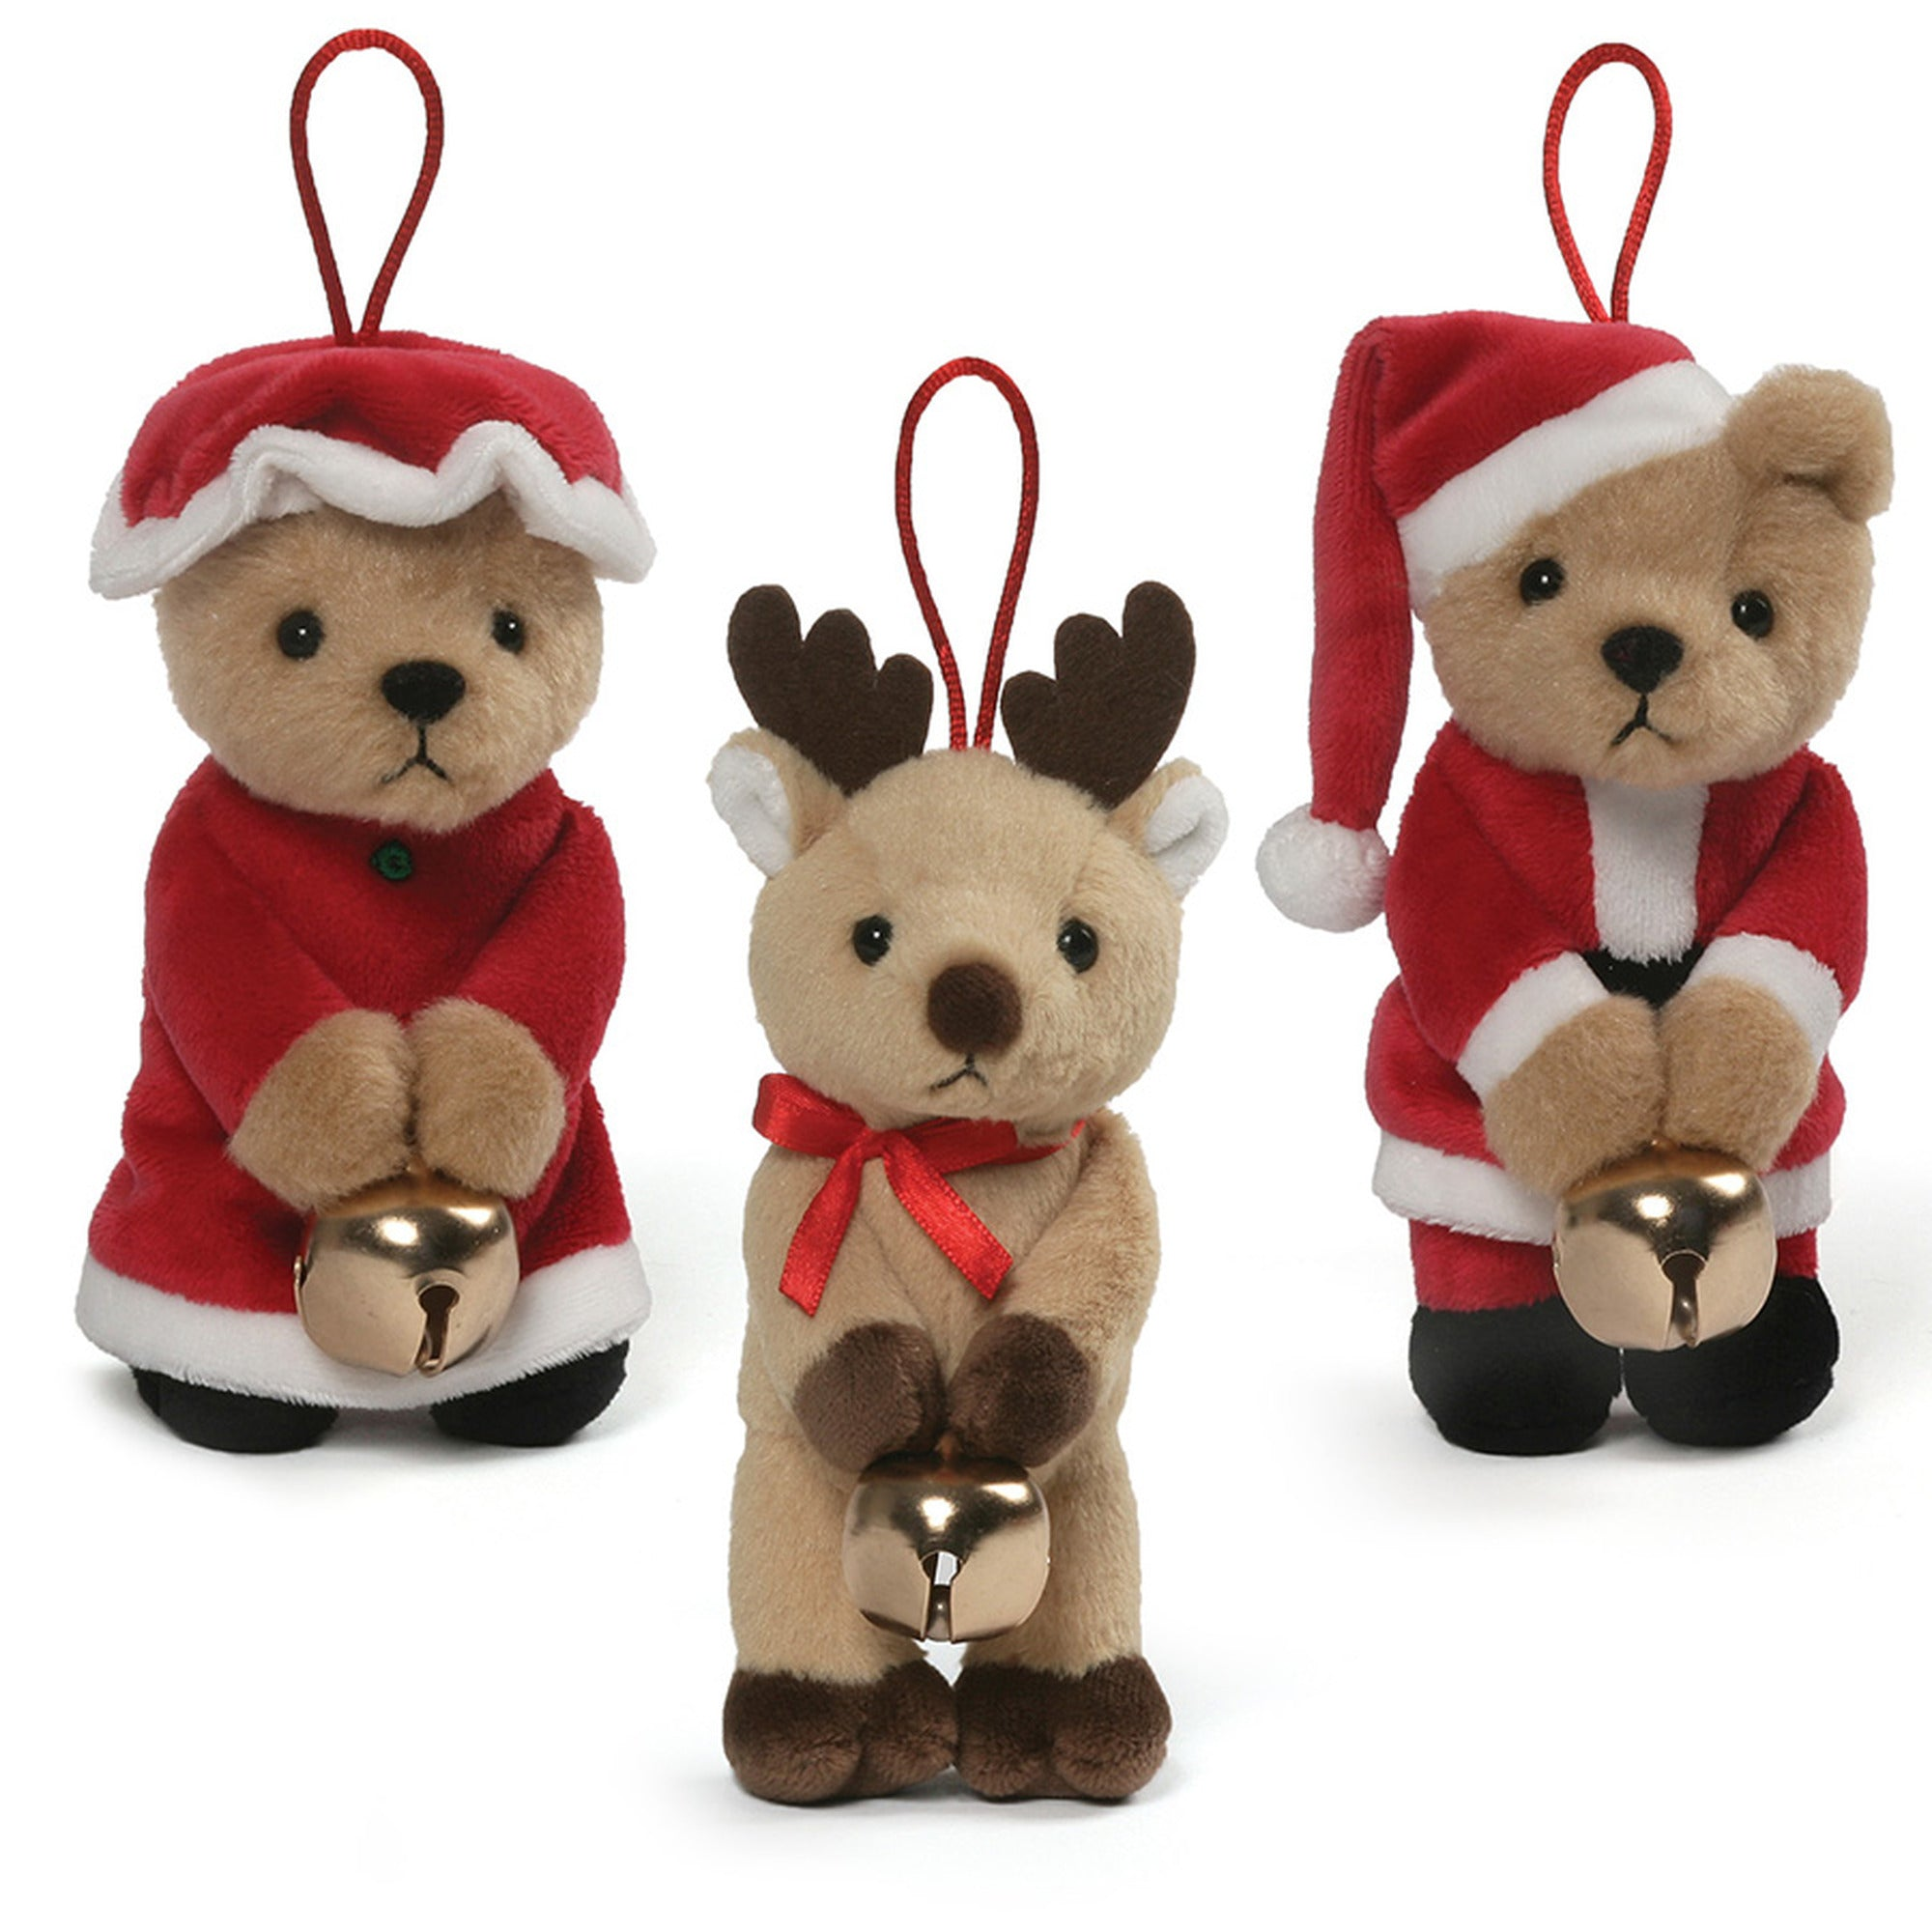 Gund - Jingle Ornaments - 3 styles